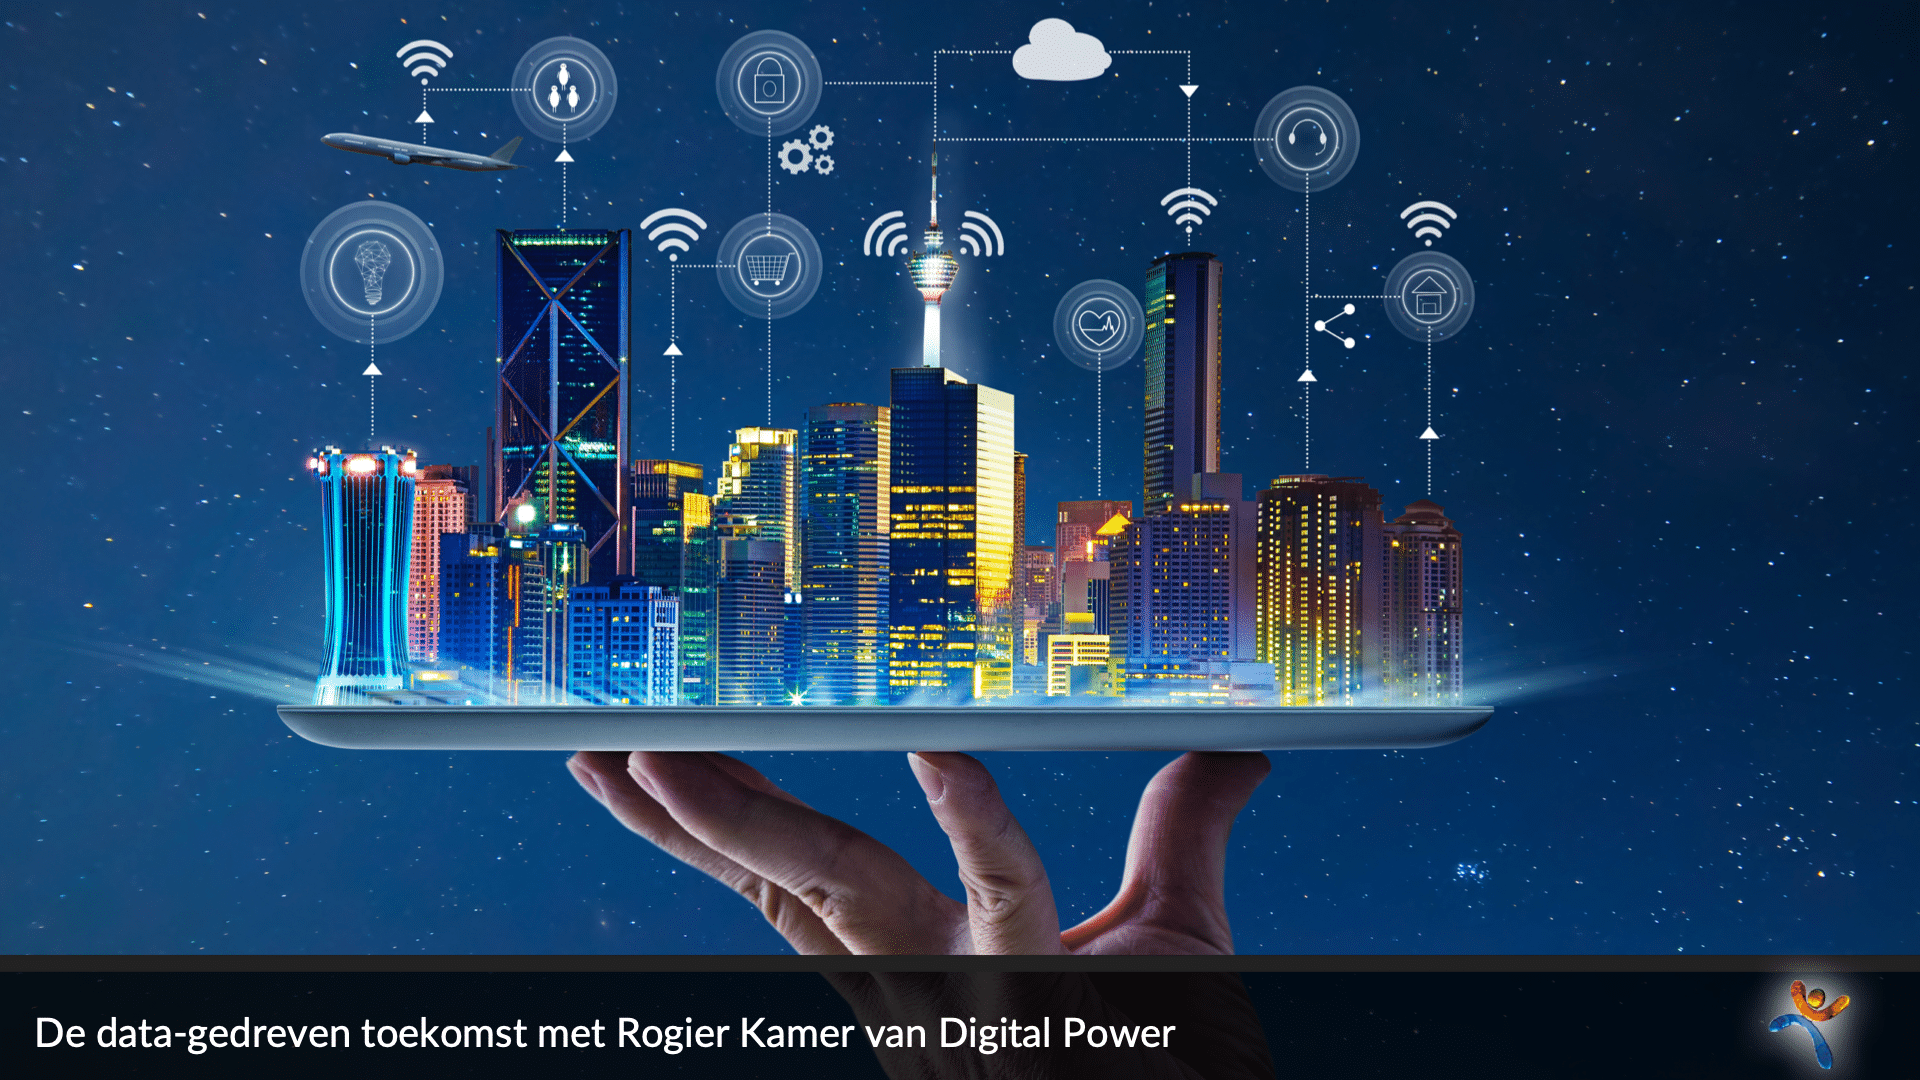 Een fascinerend gesprek met Rogier Kamer van Digital Power over big data en de digitalisering van de samenleving.